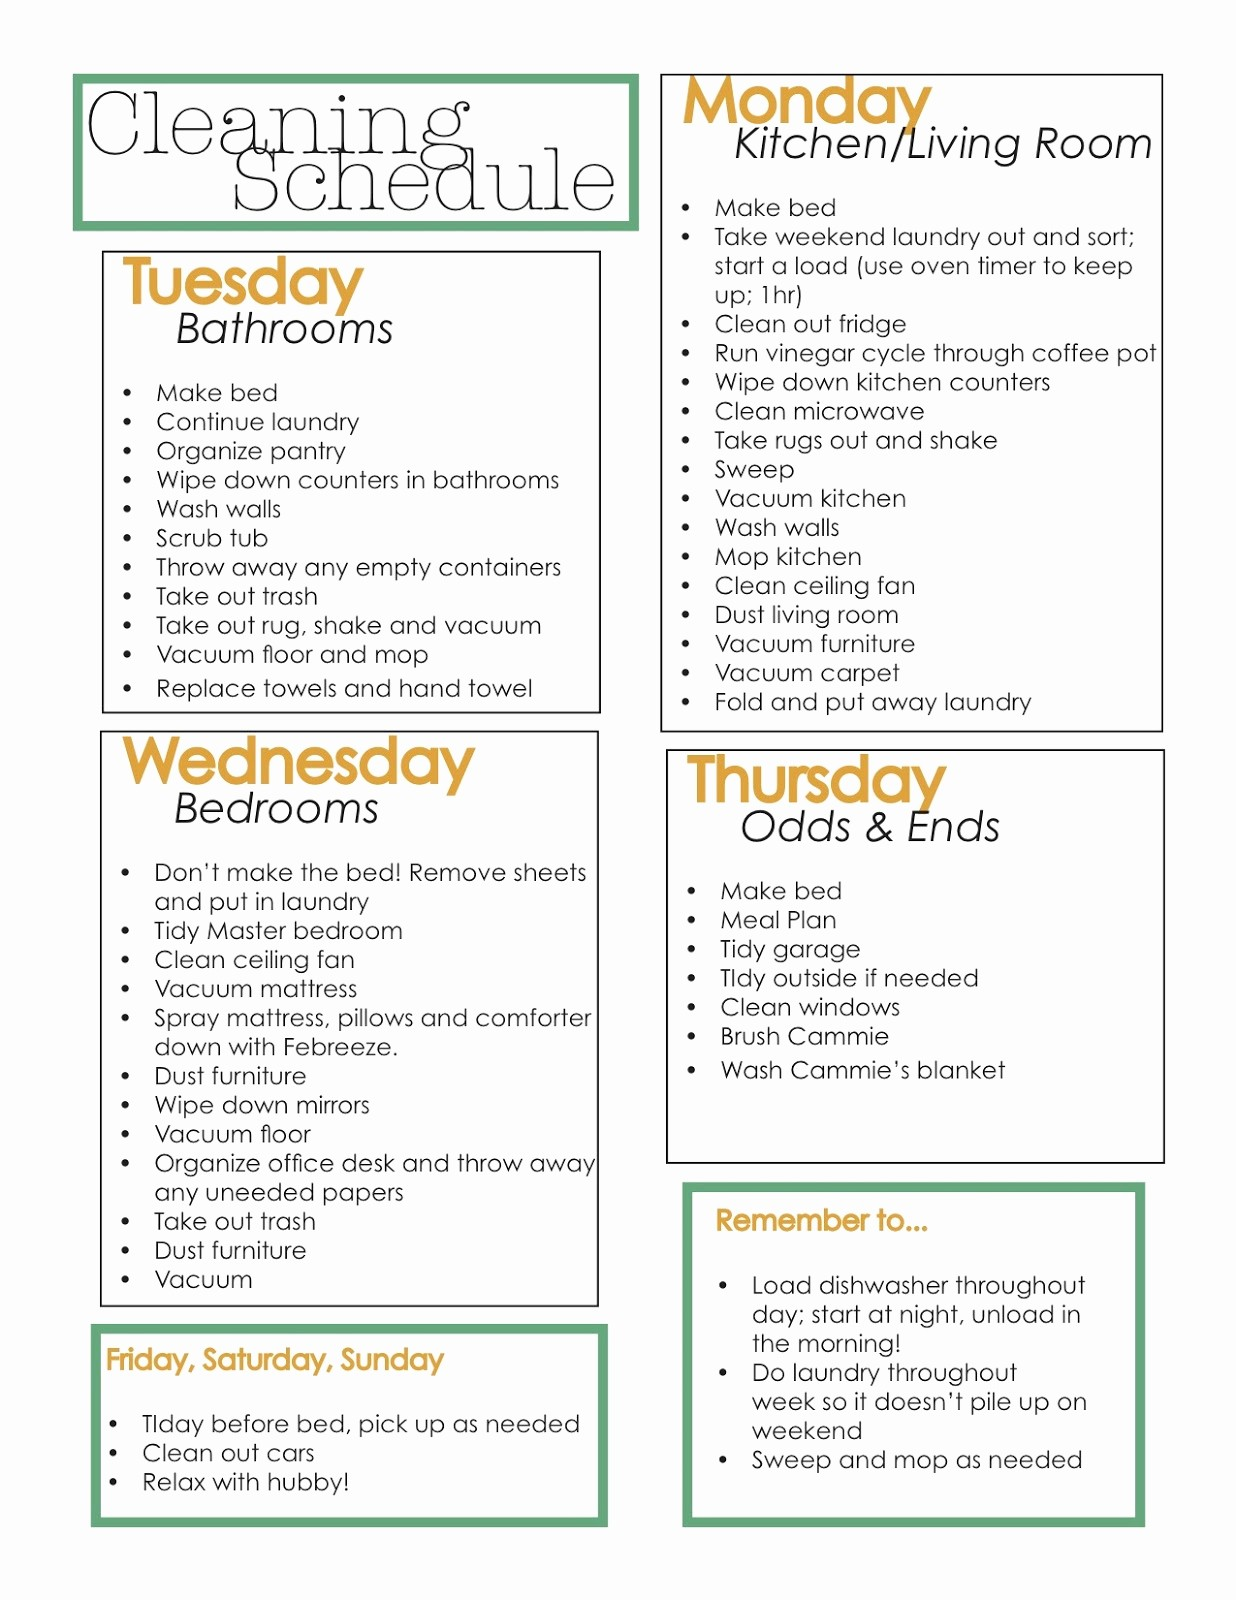 Monthly House Cleaning Schedule Template Beautiful Home Cleaning Schedule